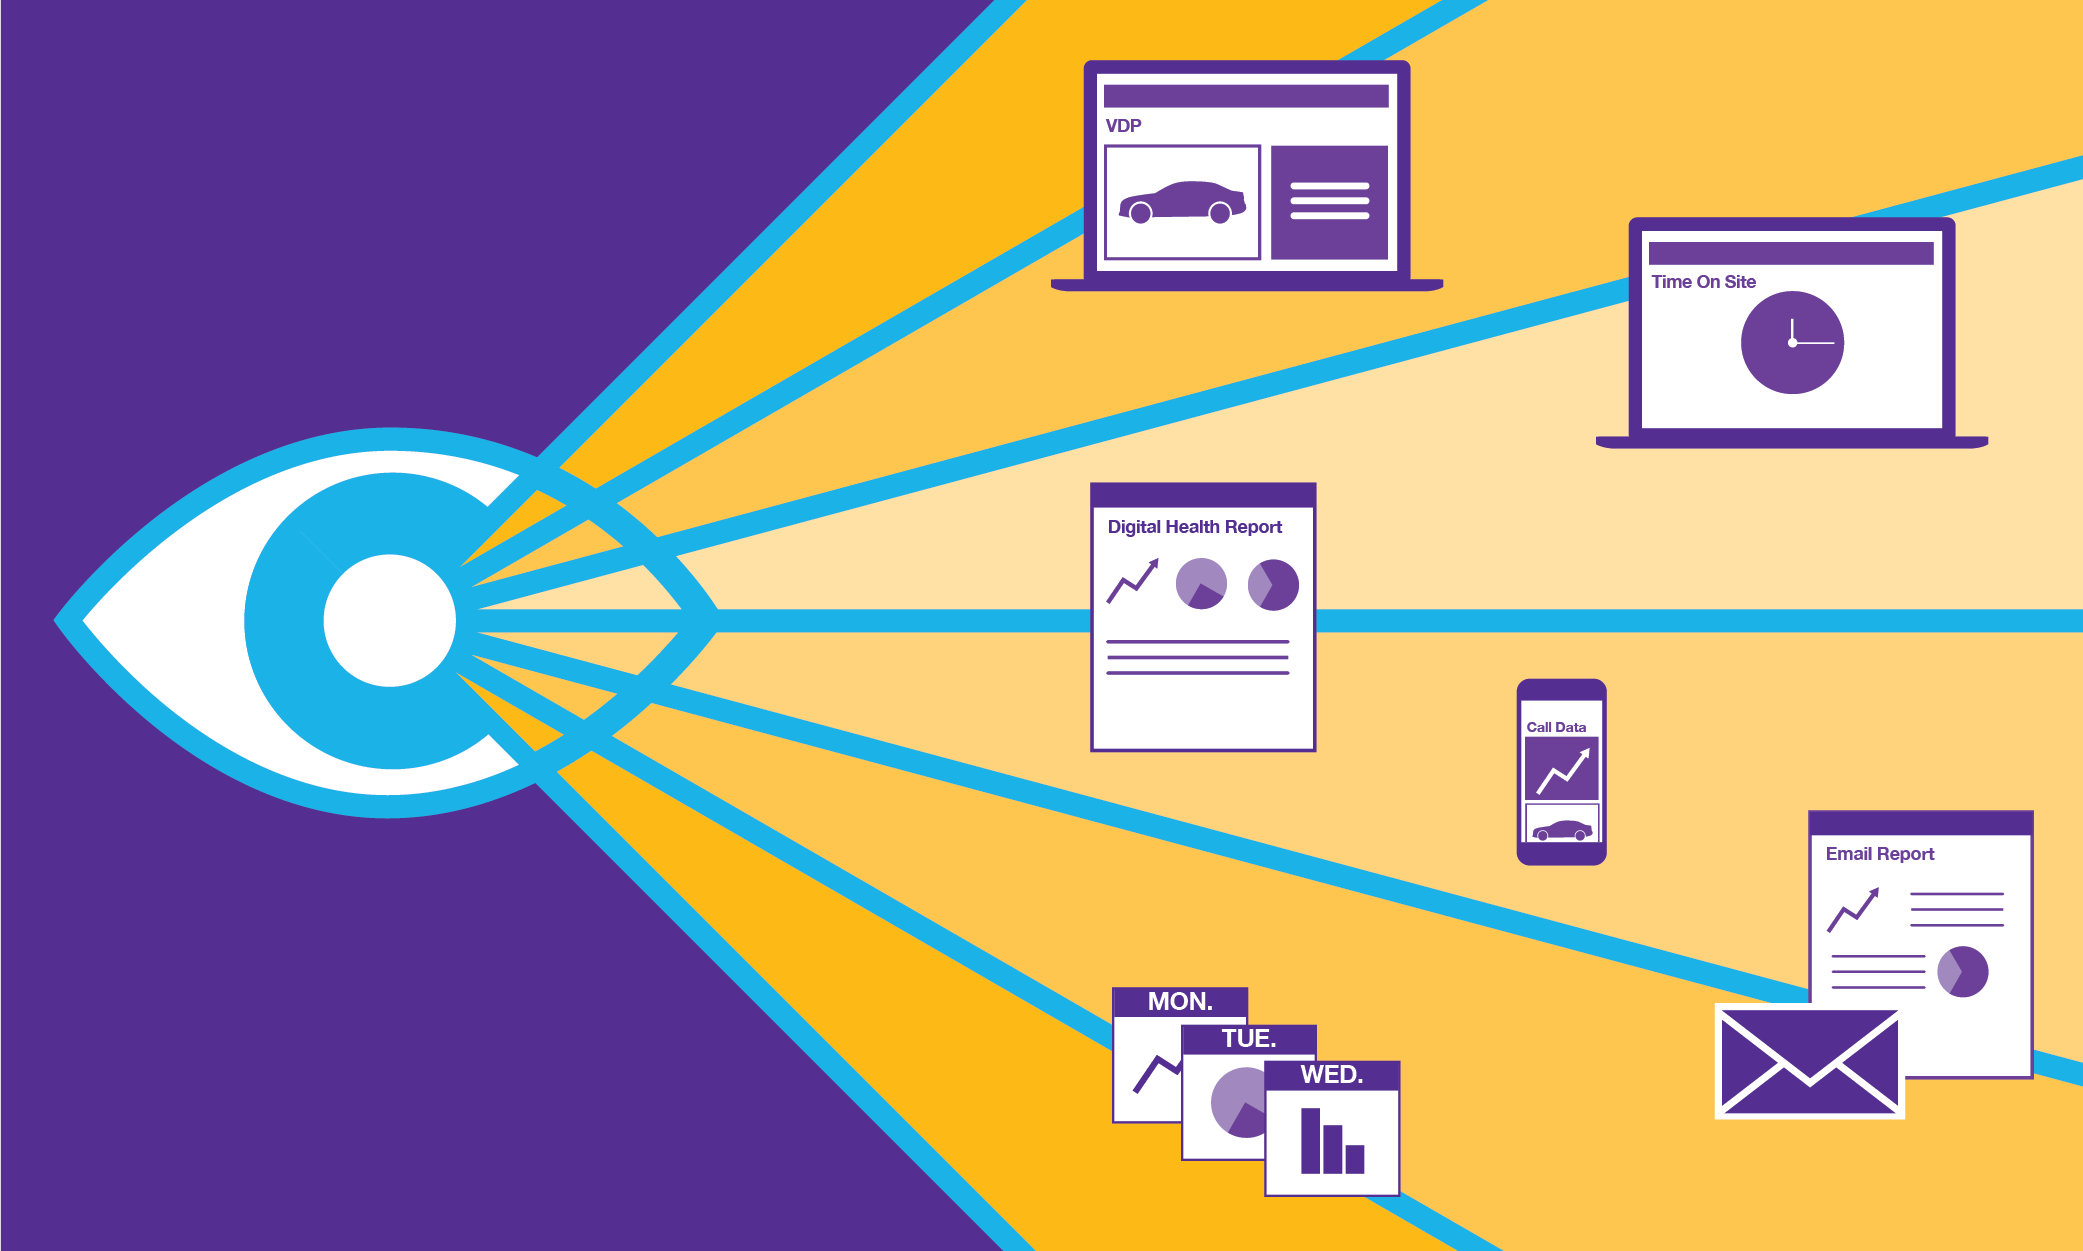 Six Ways for Internet Managers to Look Beyond Leads